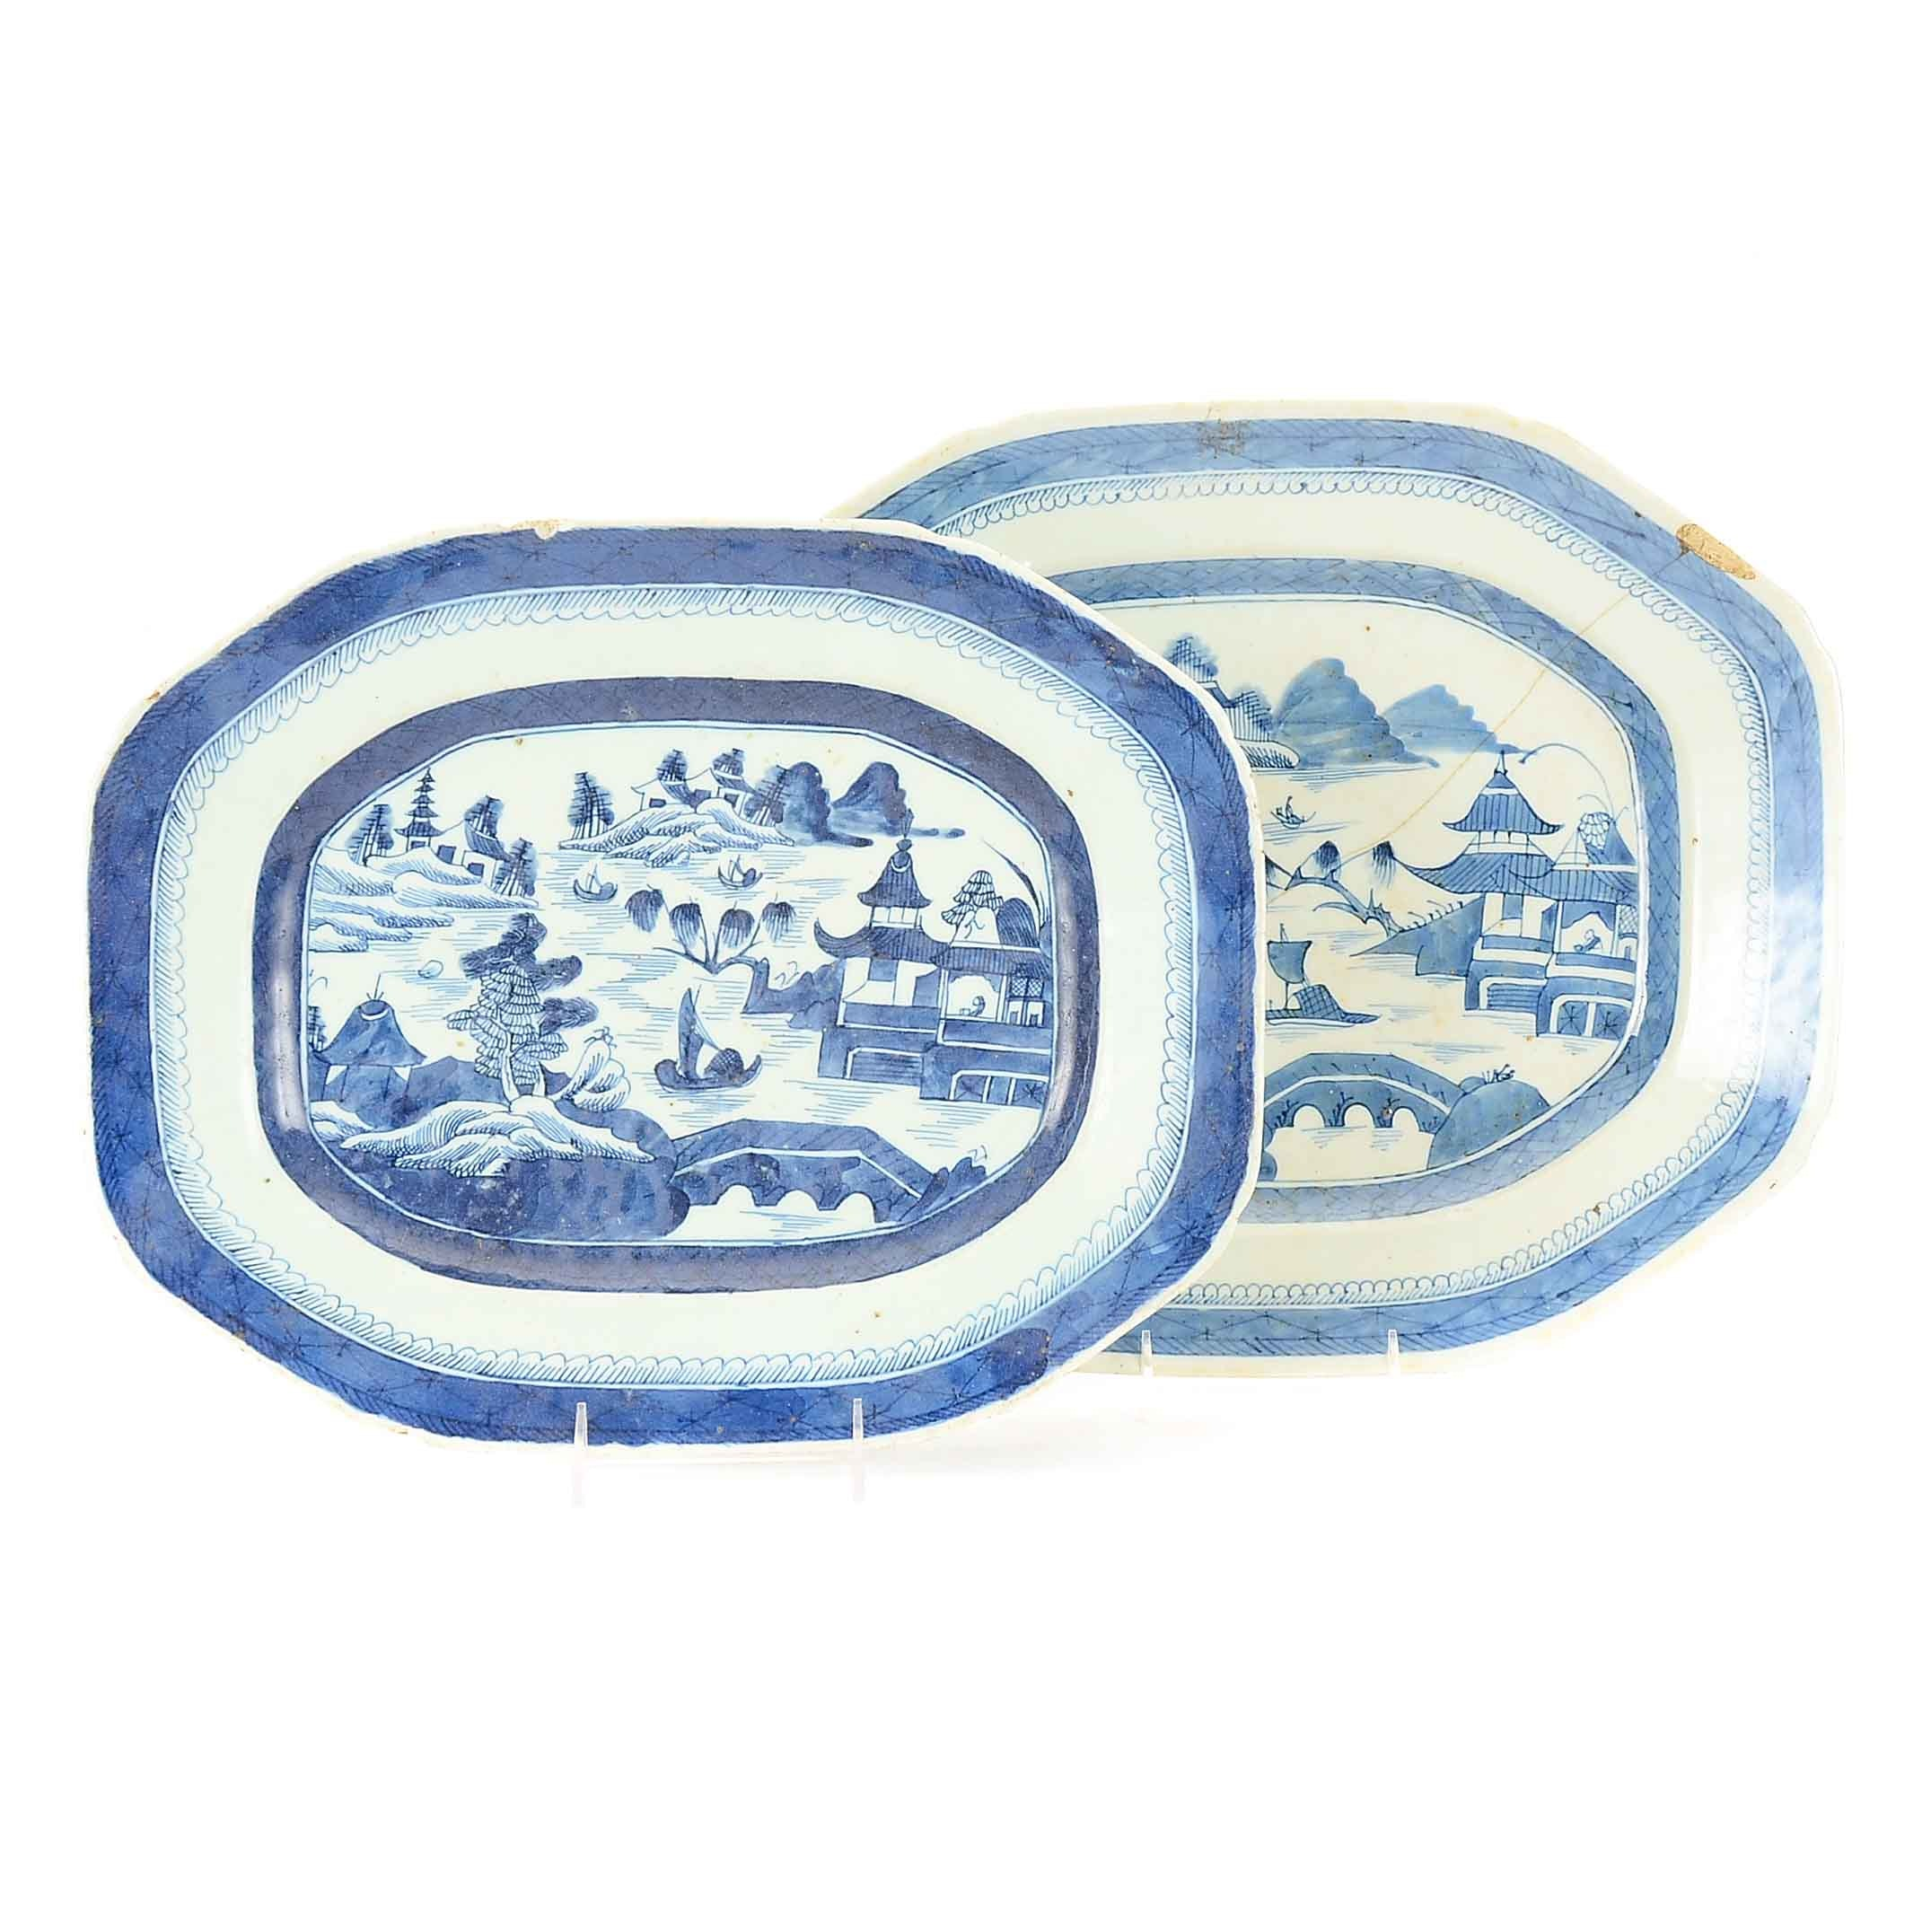 Antique Hand-Painted Chinese Platters